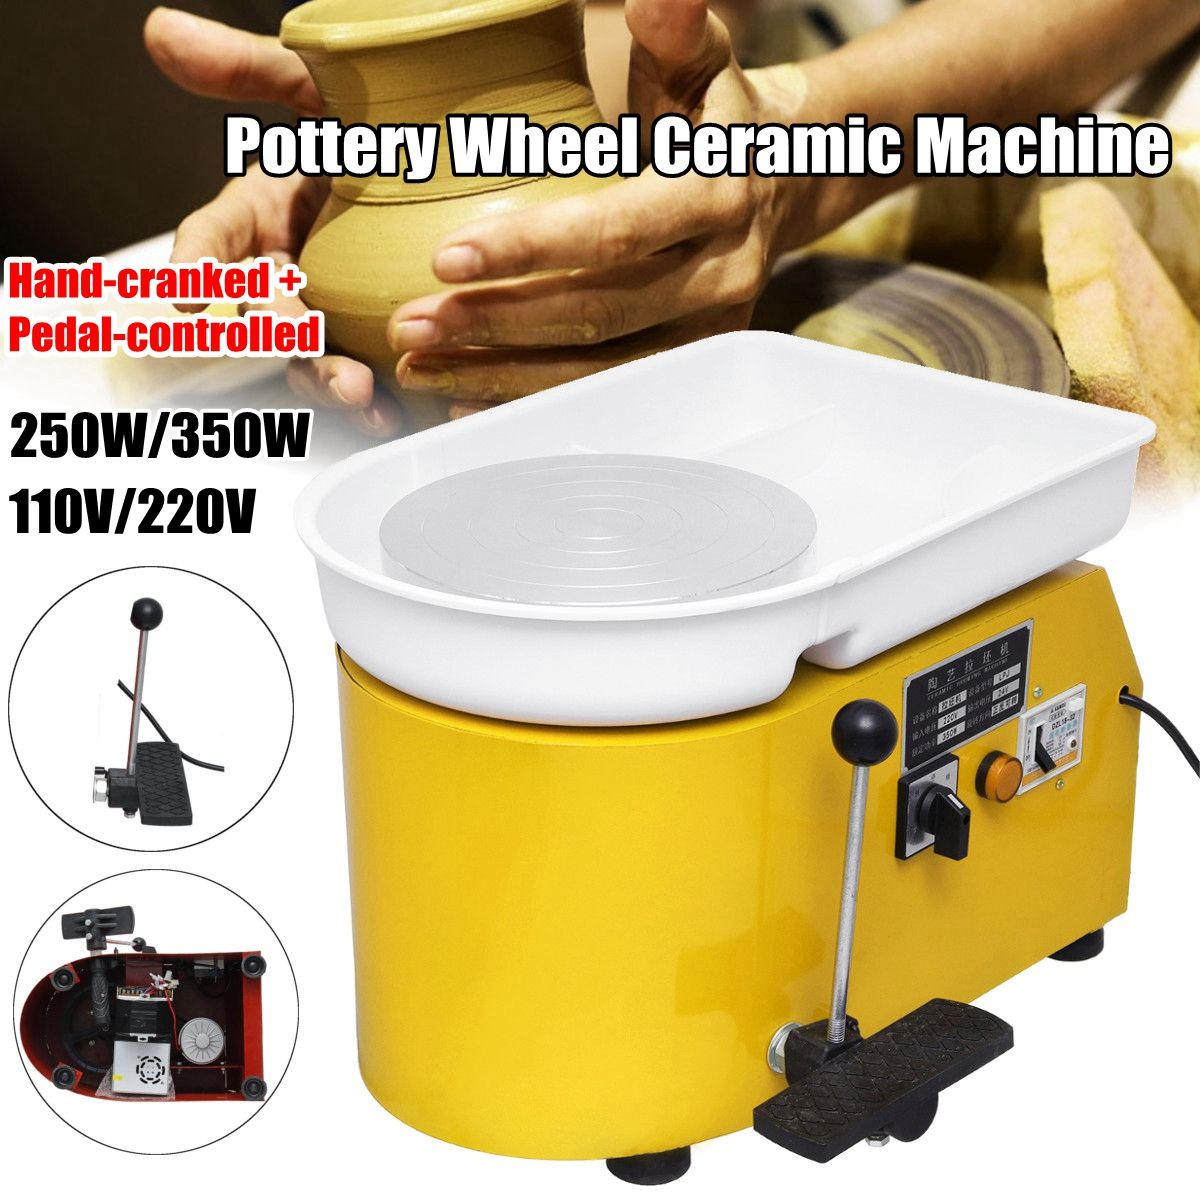 110V/220V Pottery Forming Machine 250W/350W Electric Pottery Wheel DIY Clay Tool with Tray For Ceramic Work Ceramics